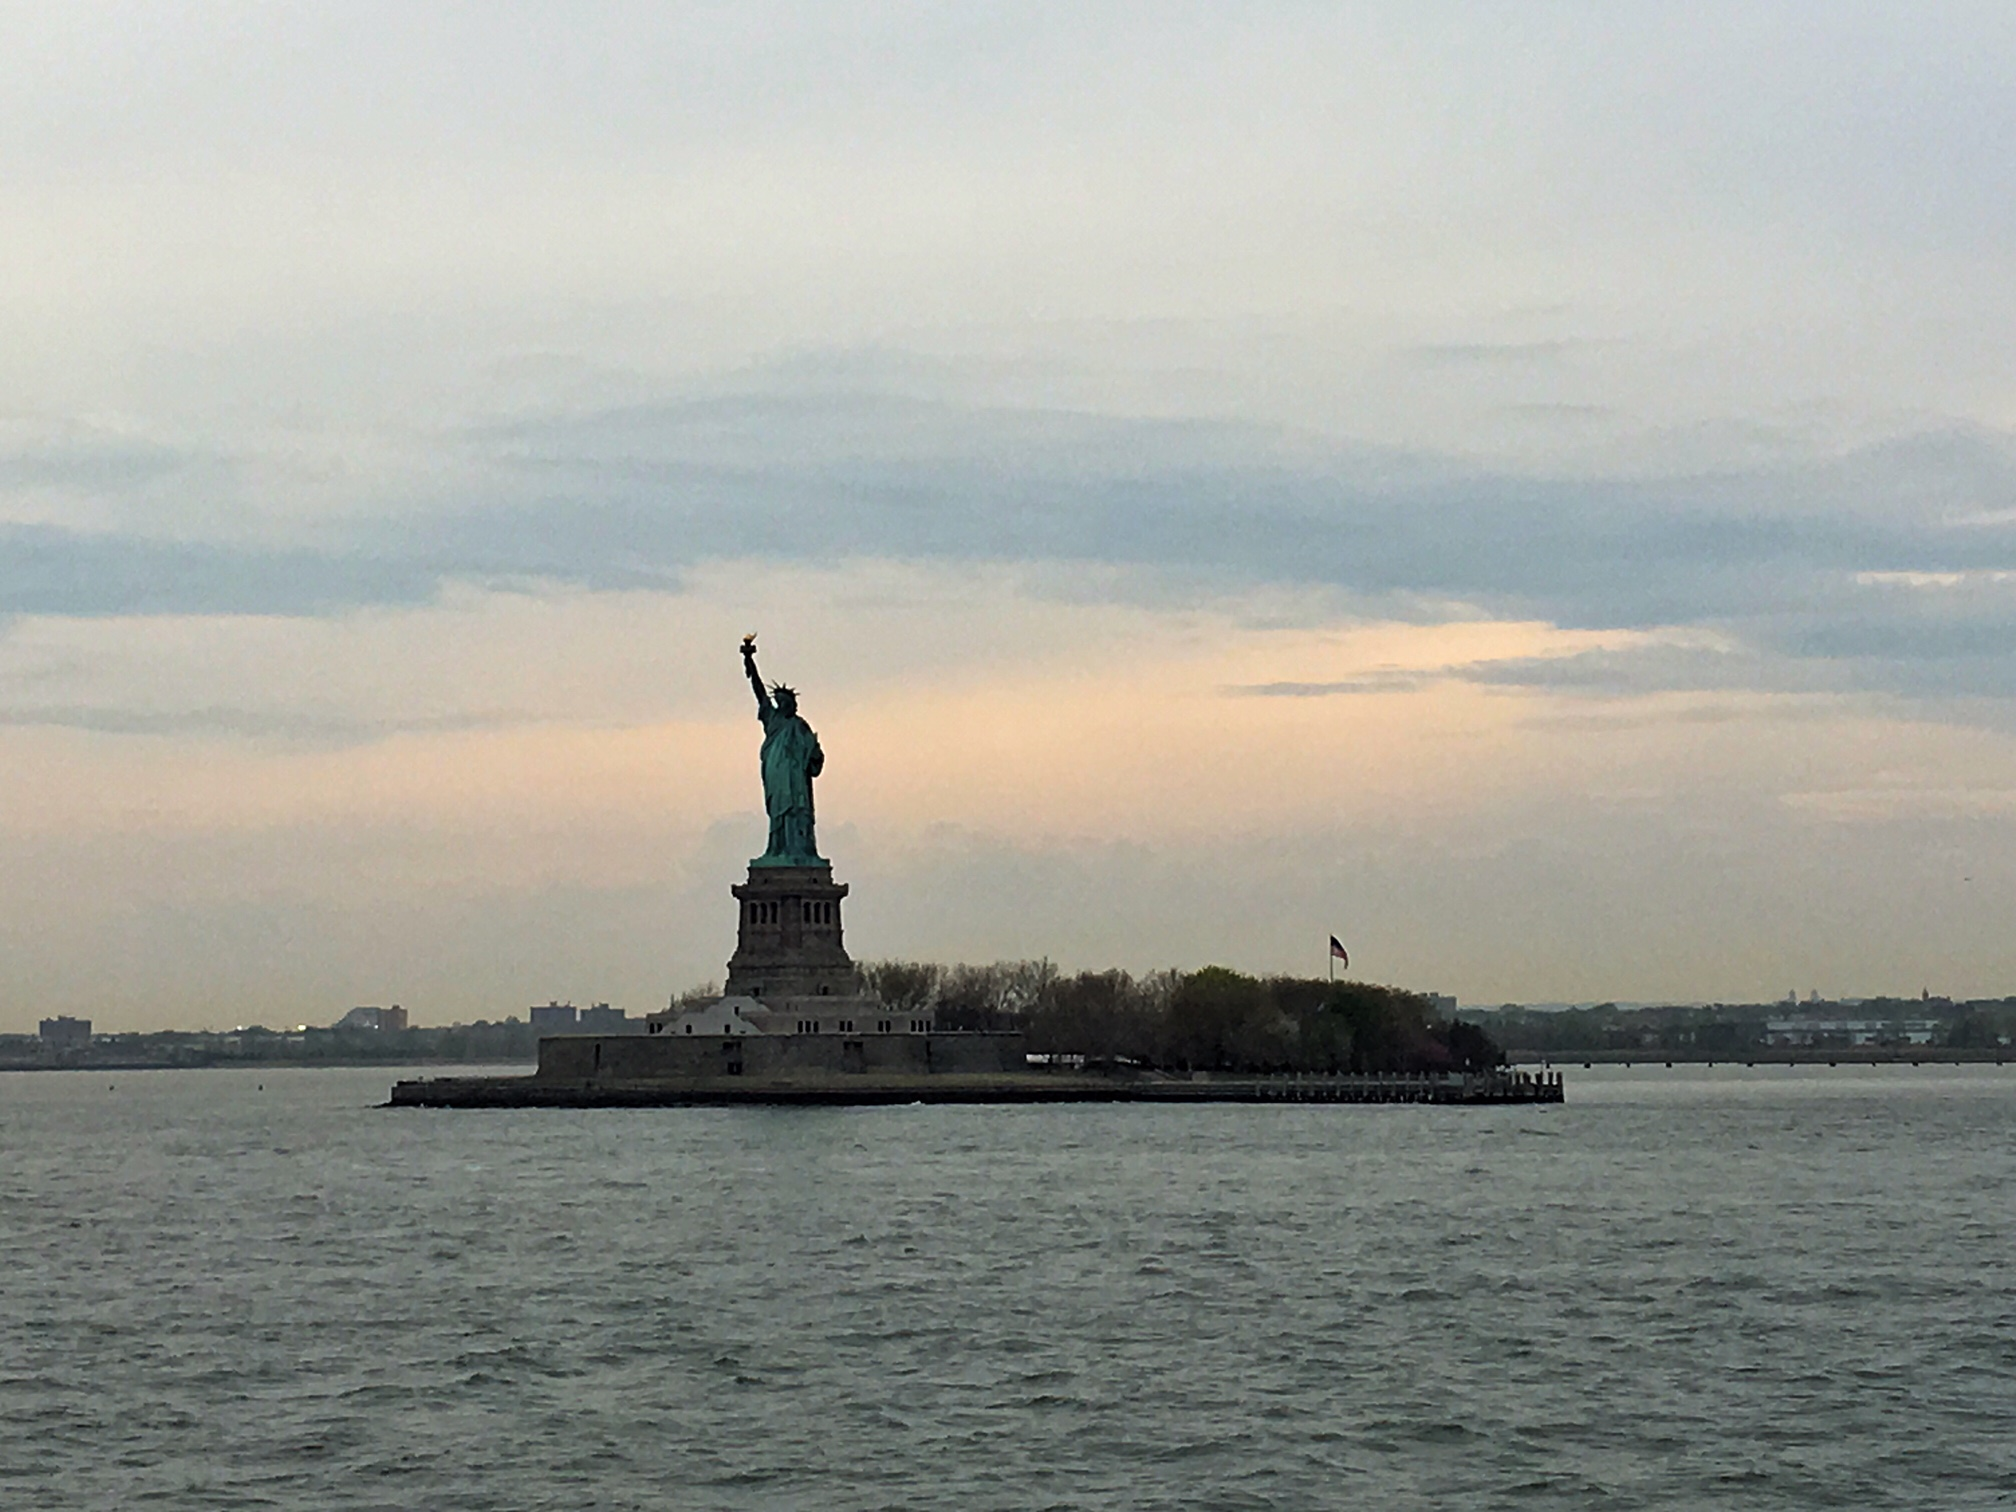 Got onto the Hudson River on the Staten Island Ferry to take in a view of Lady Liberty.